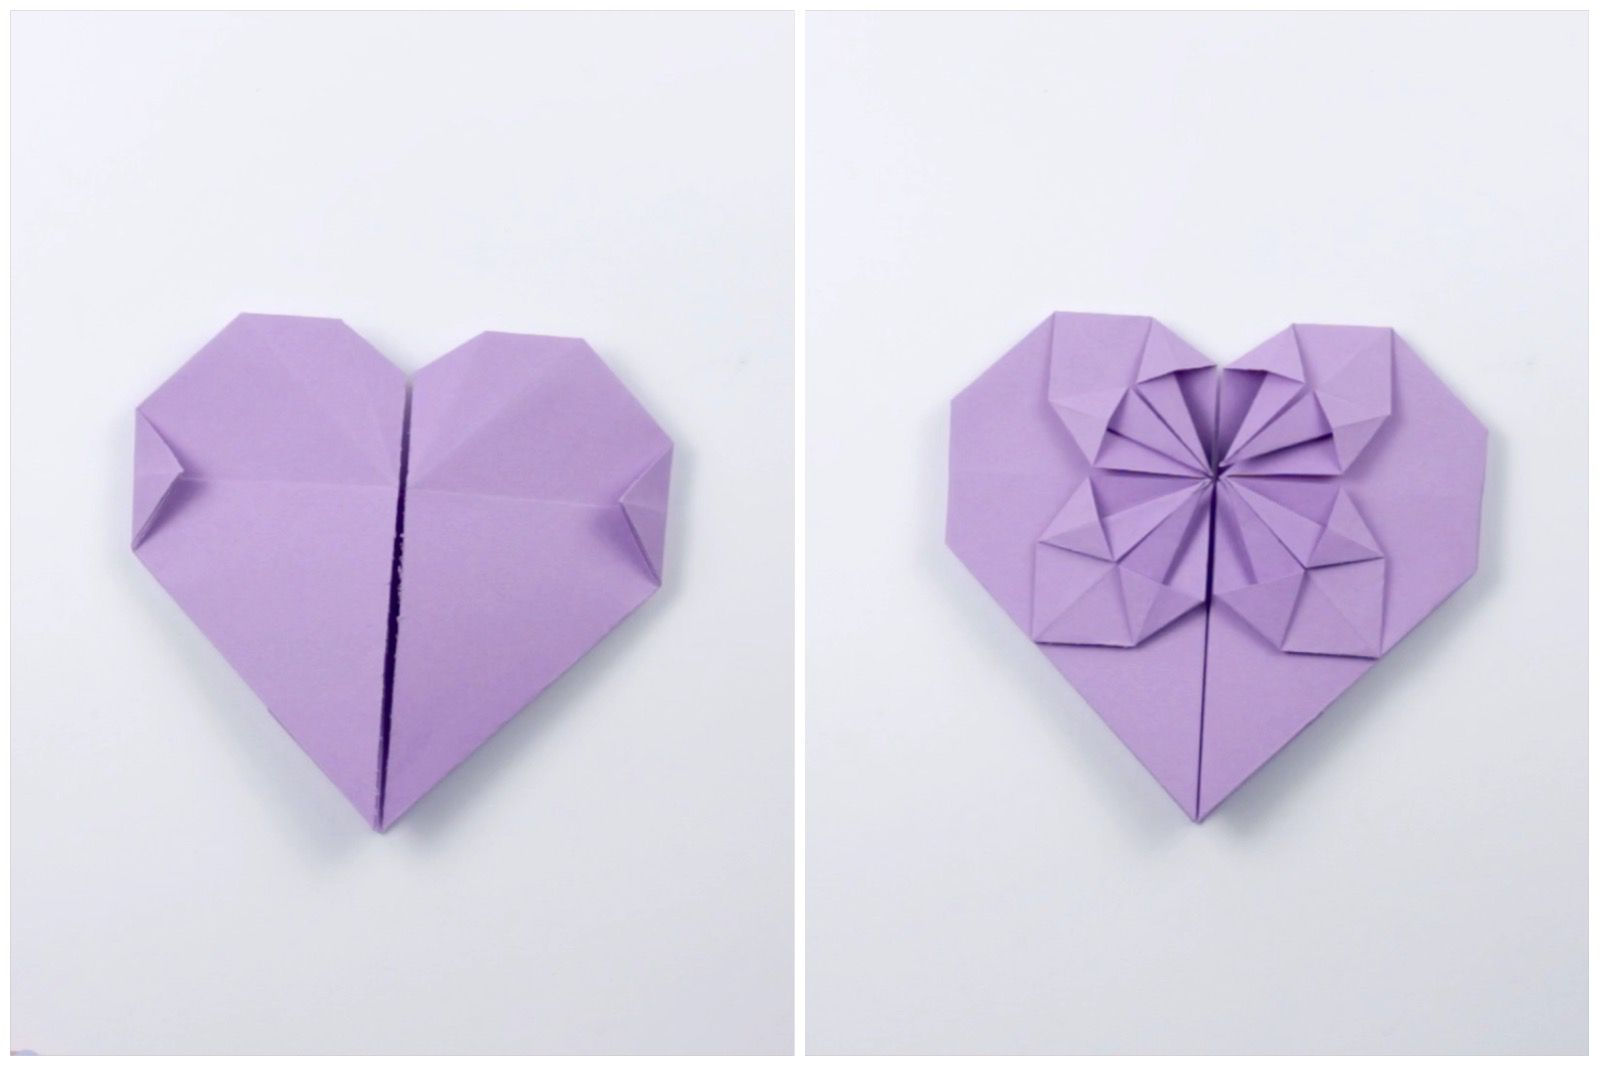 Dollar Bill Origami Heart How To Make An Origami Heart